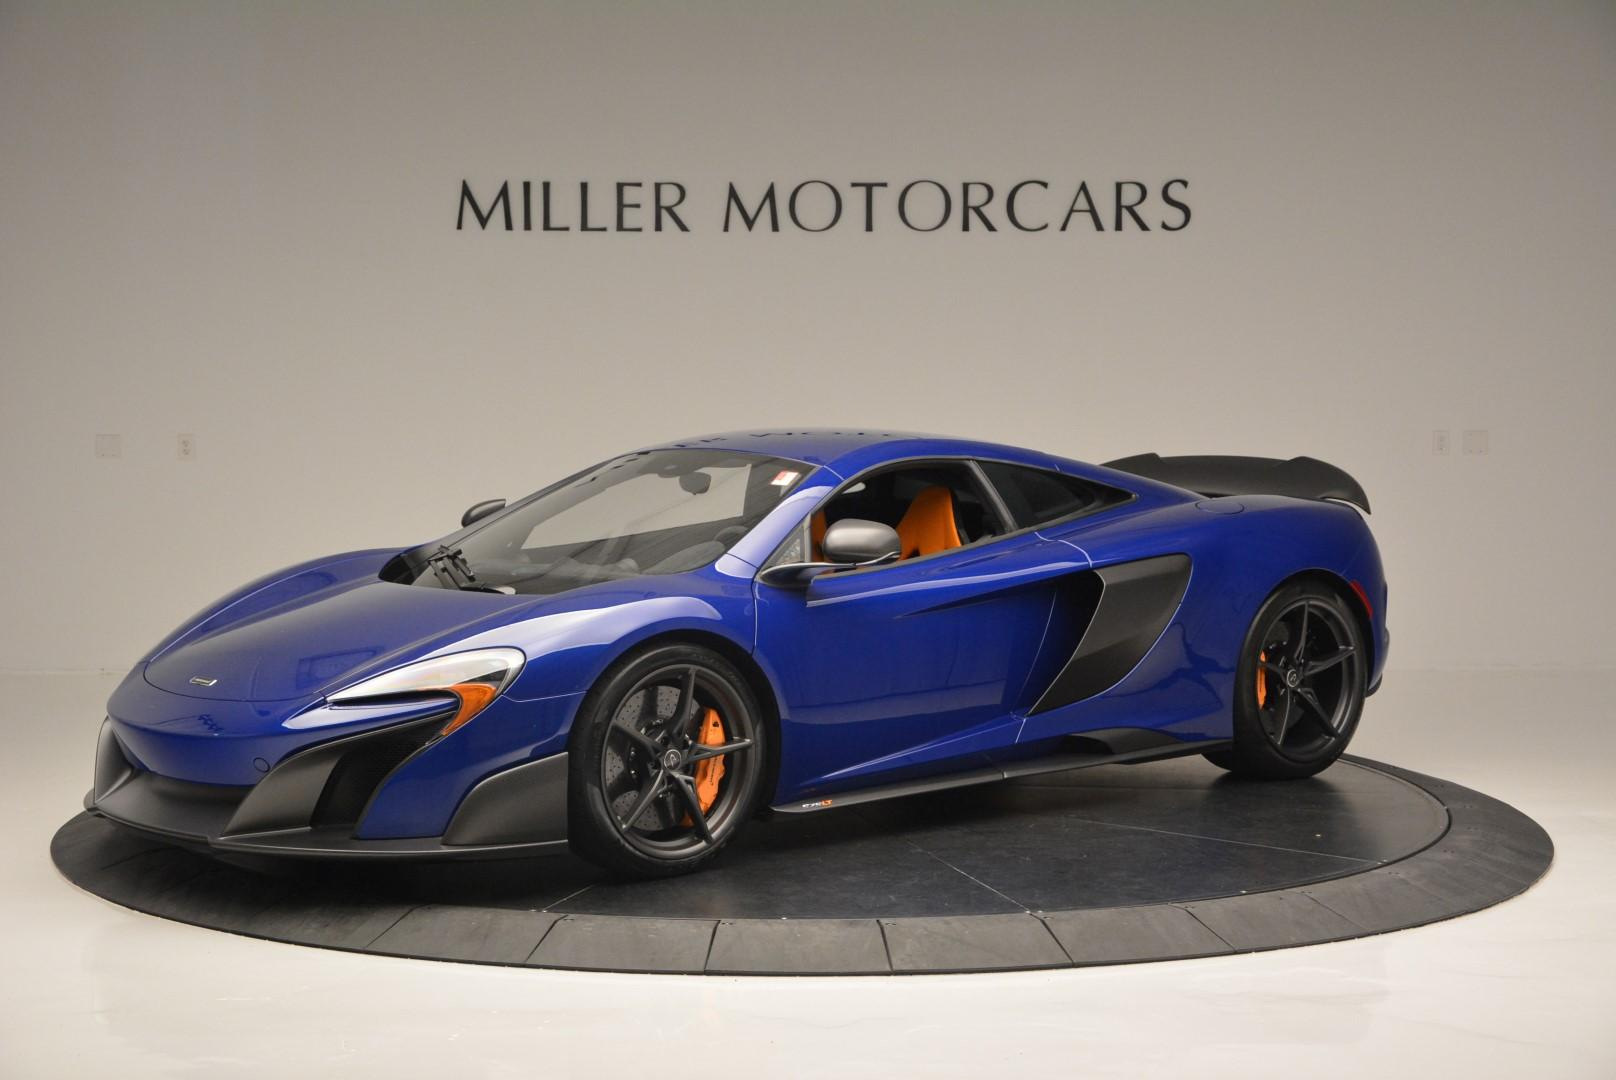 Used 2016 McLaren 675LT Coupe for sale $235,900 at Maserati of Greenwich in Greenwich CT 06830 1